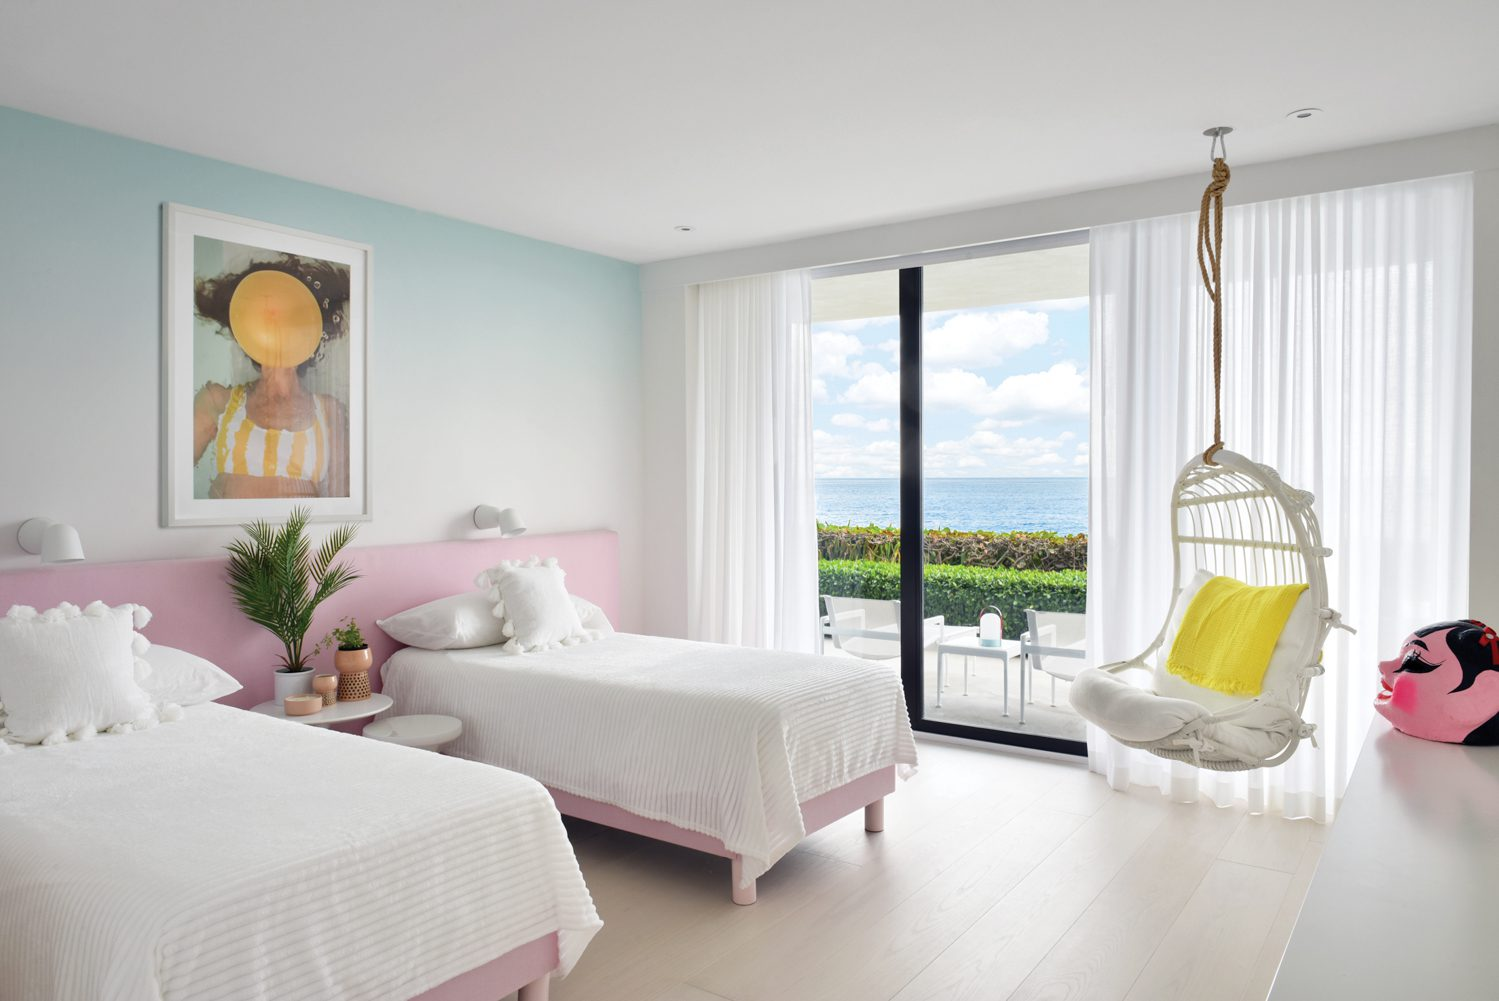 Carla Sutera Sardo's AQVA Orange accents custom ombré wallpaper in the daughter's room, where a superlong cotton-linen-covered headboard enables the twin beds to be pushed together or pulled apart as desired.